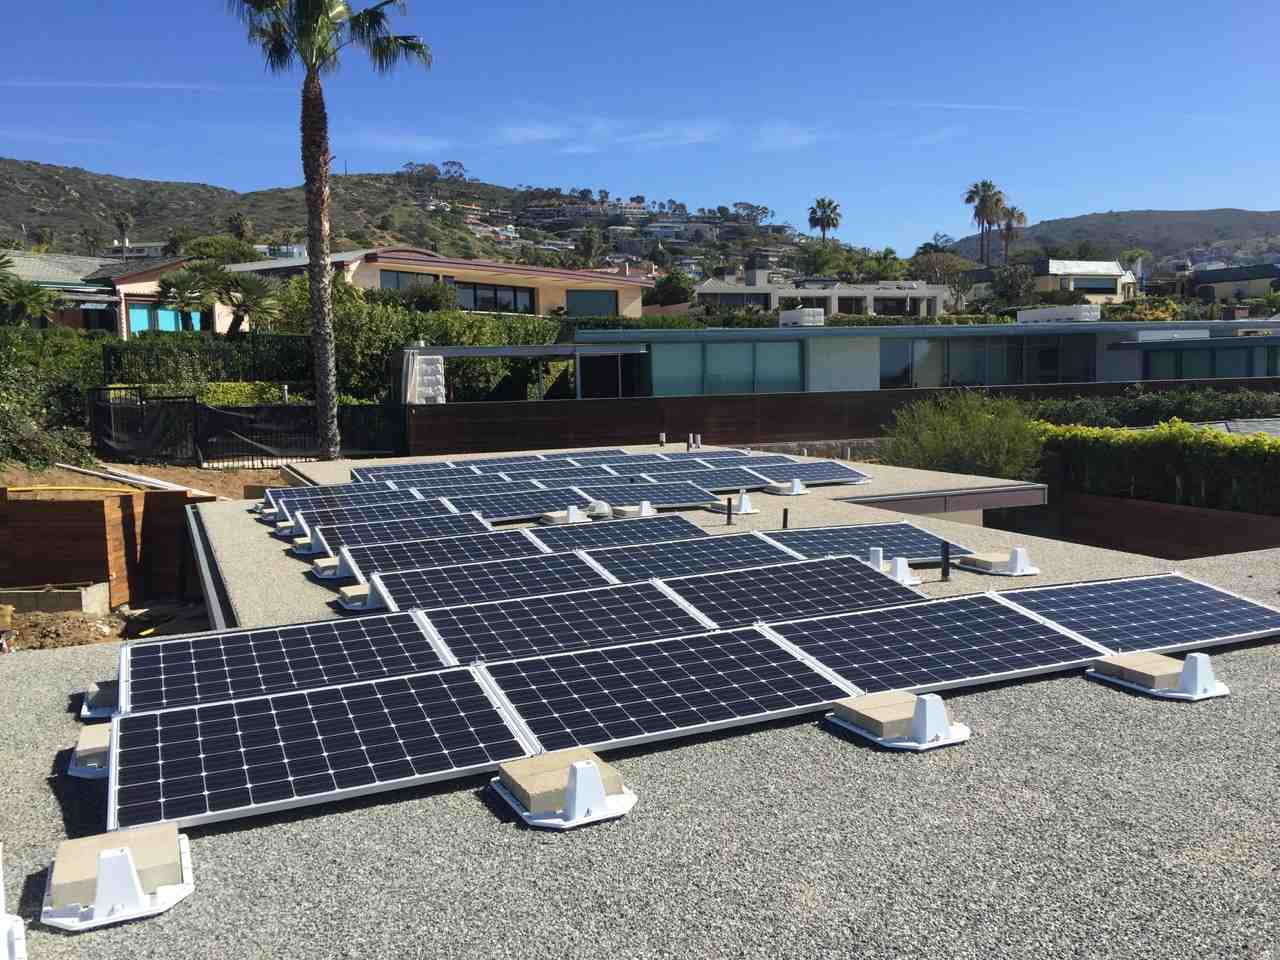 How much does it cost to install 1 MW of solar?